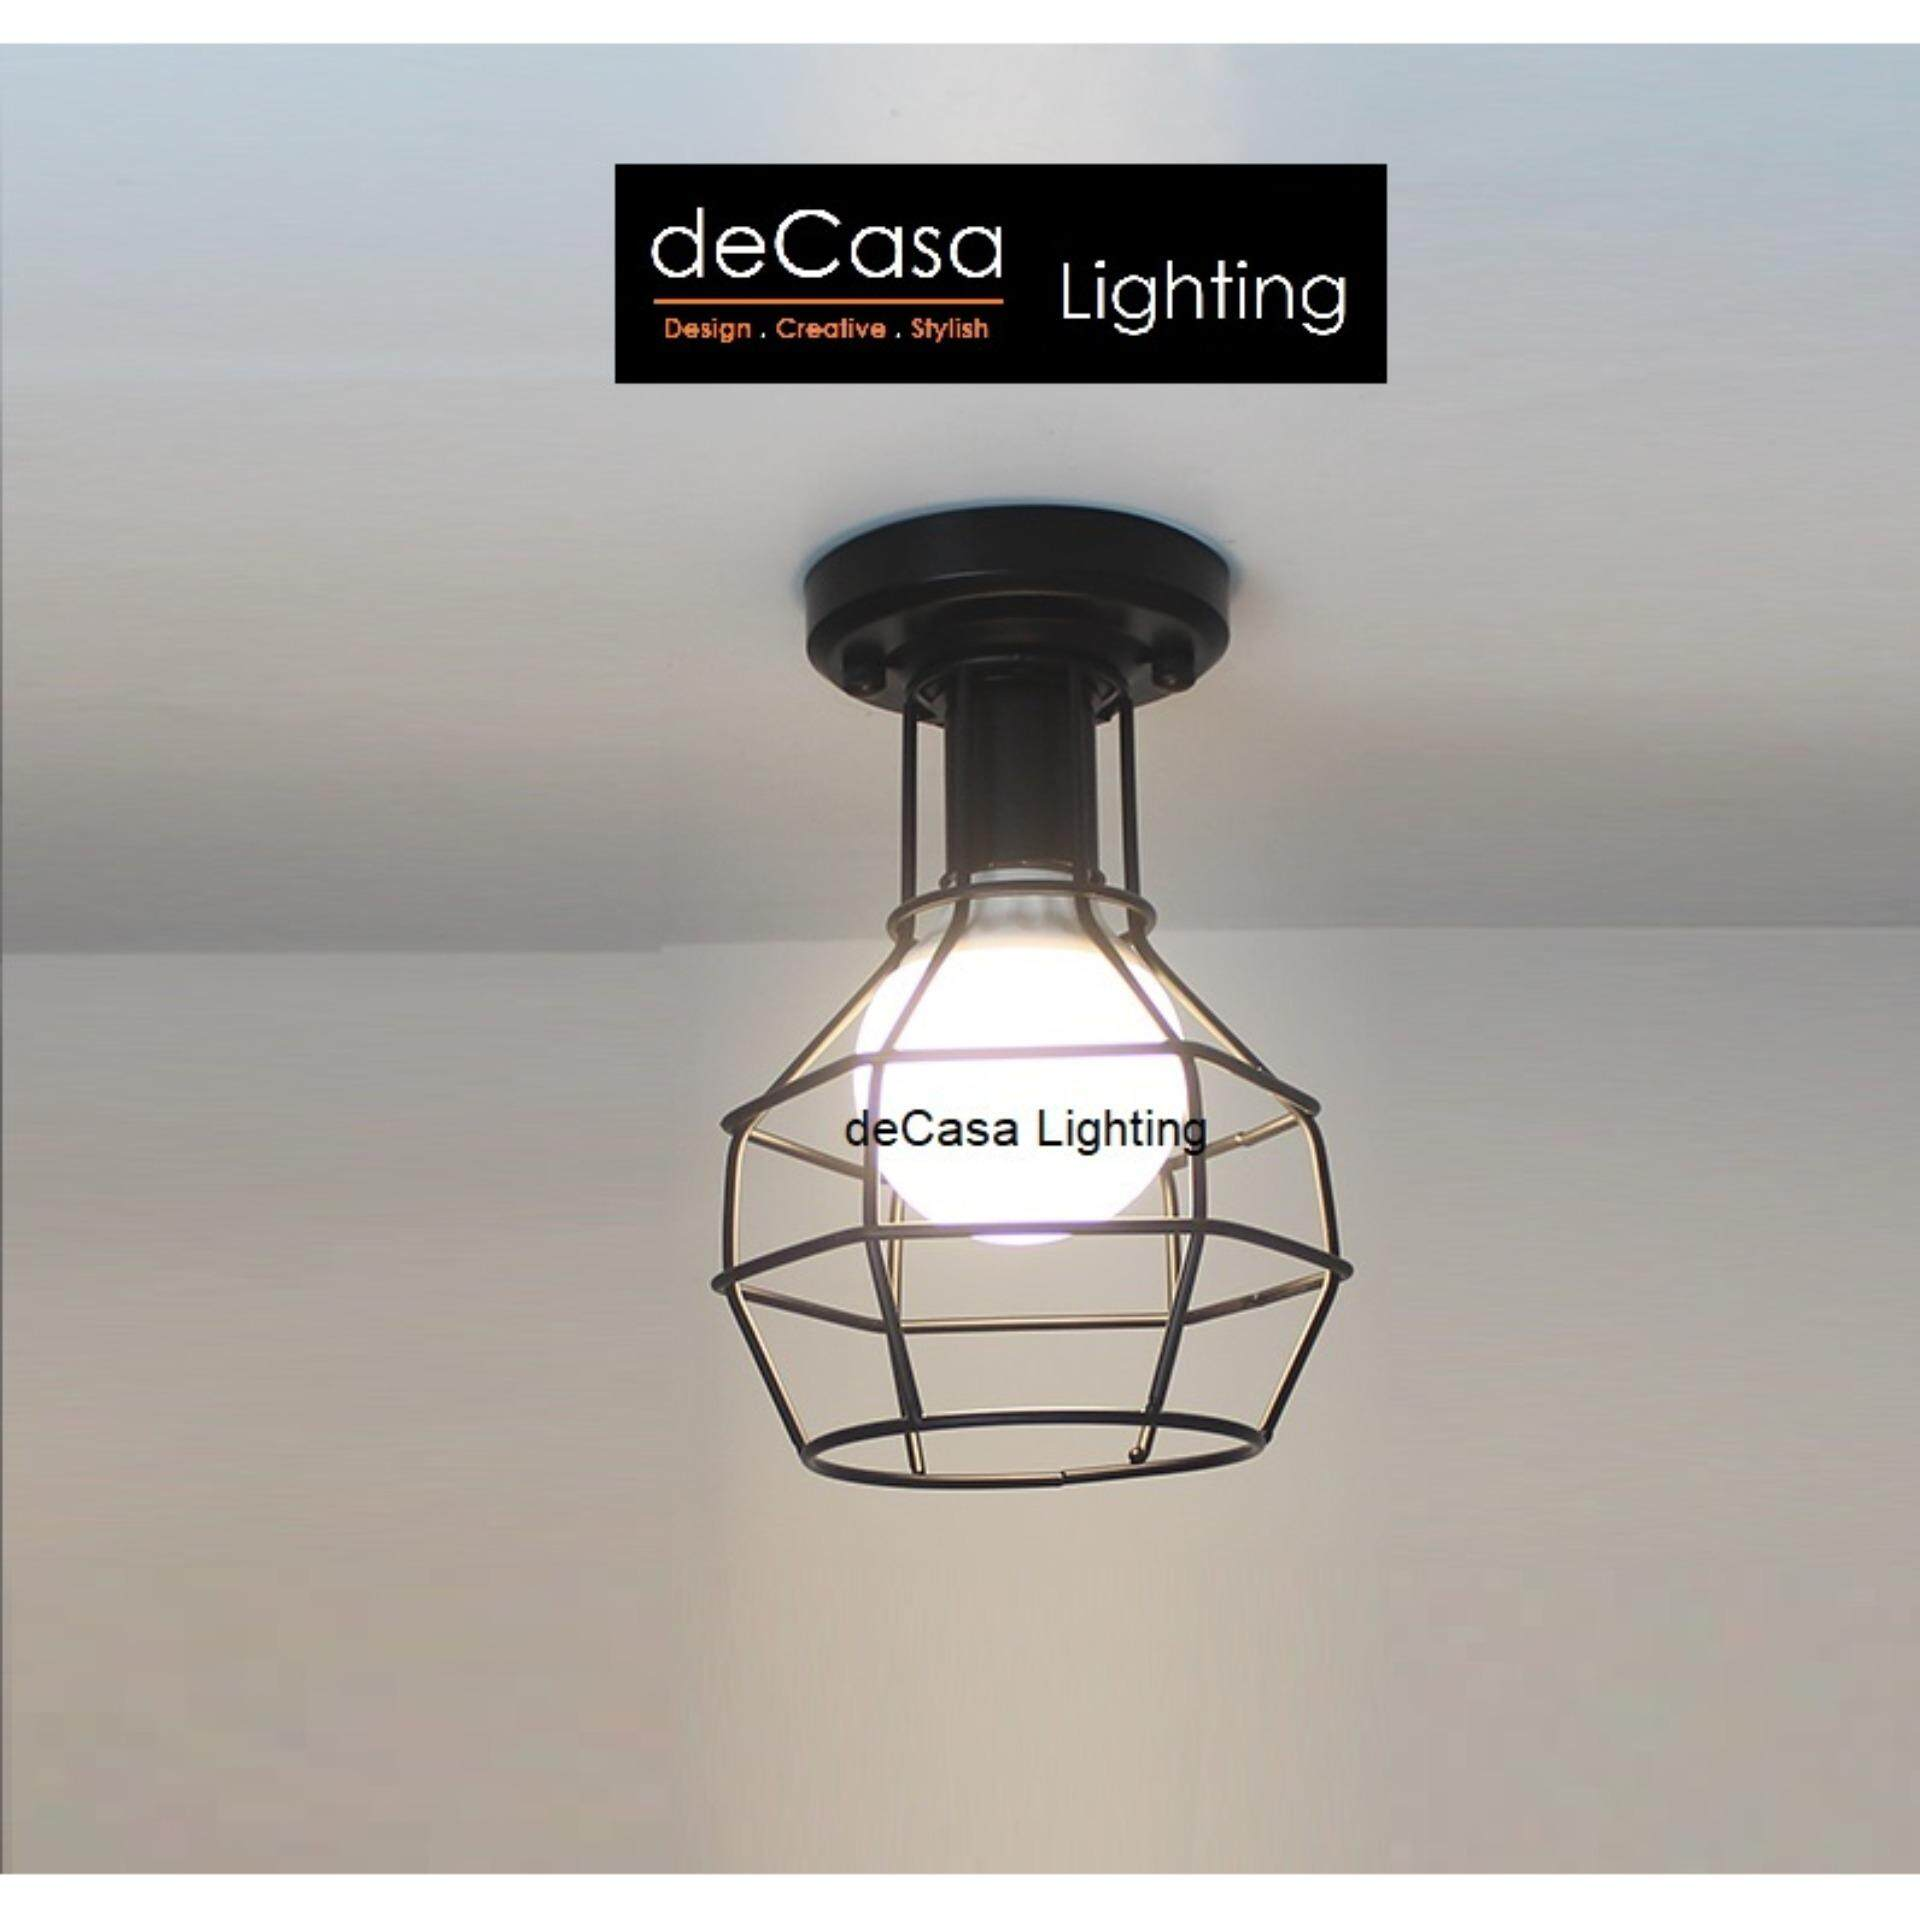 Black Loft Ceiling Light DECASA Hanging Light E27 Best Seller Ceiling Lamp (MH-0180-200-BK)